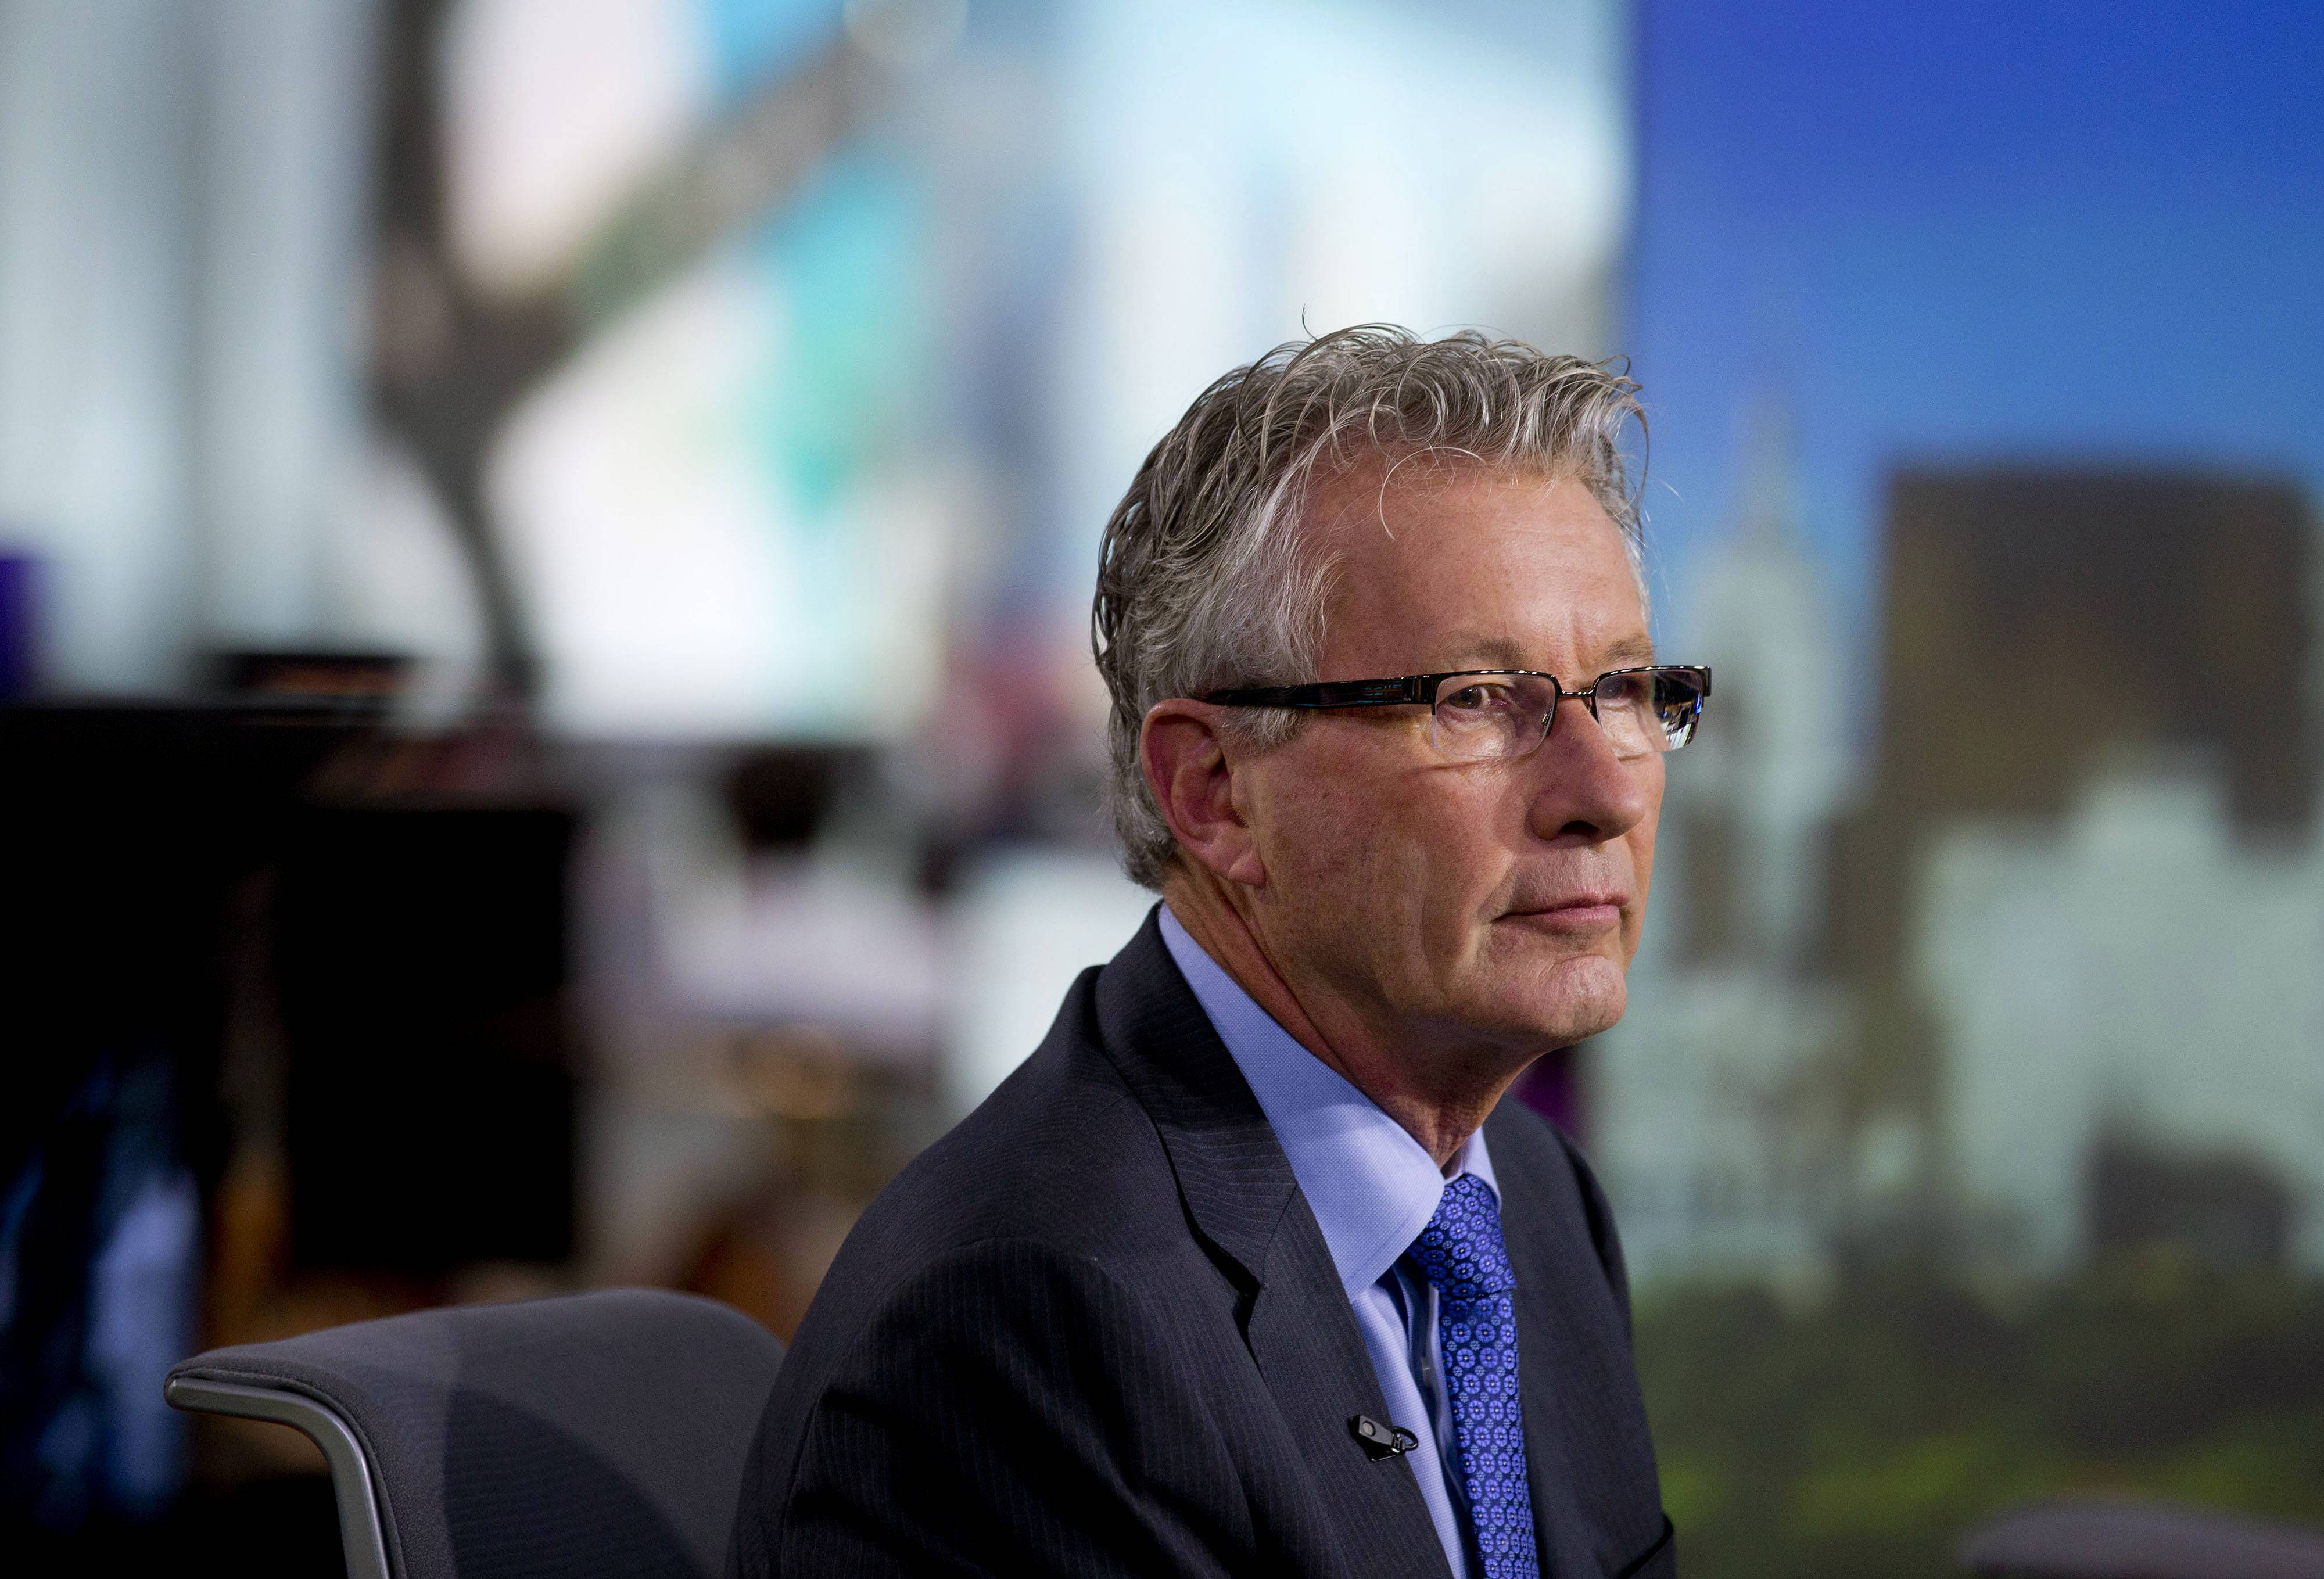 Nigel Travis, chief executive officer of Dunkin' Brands Group Inc., listens to a question during a Bloomberg Television interview in New York, U.S., on Friday, June 6, 2014.